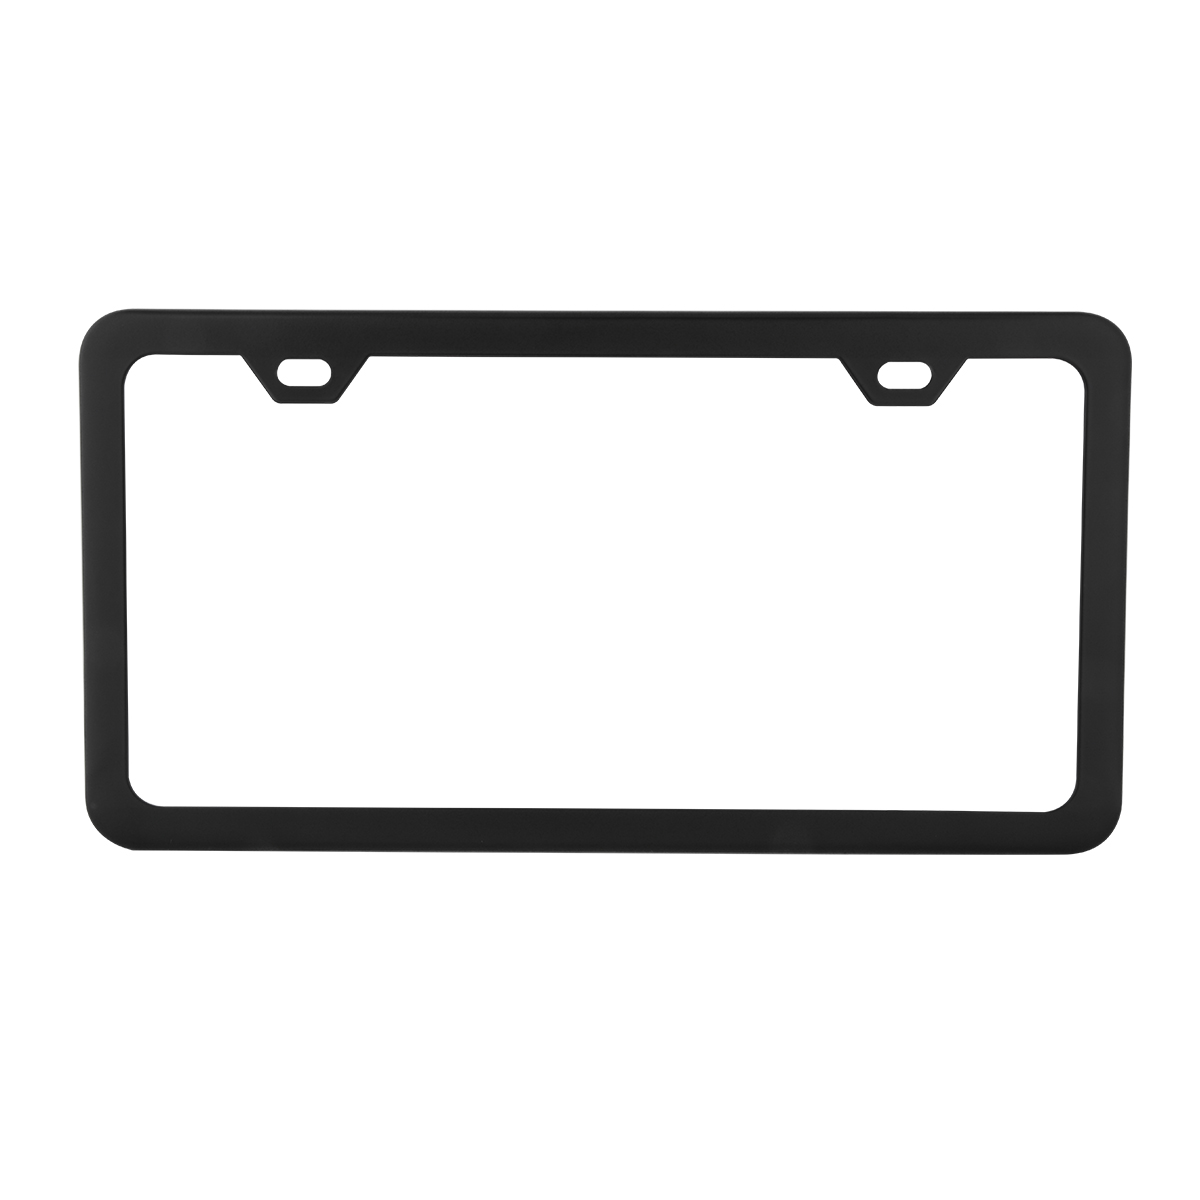 60402 Plain Matte Black 2 Hole License Plate Frame